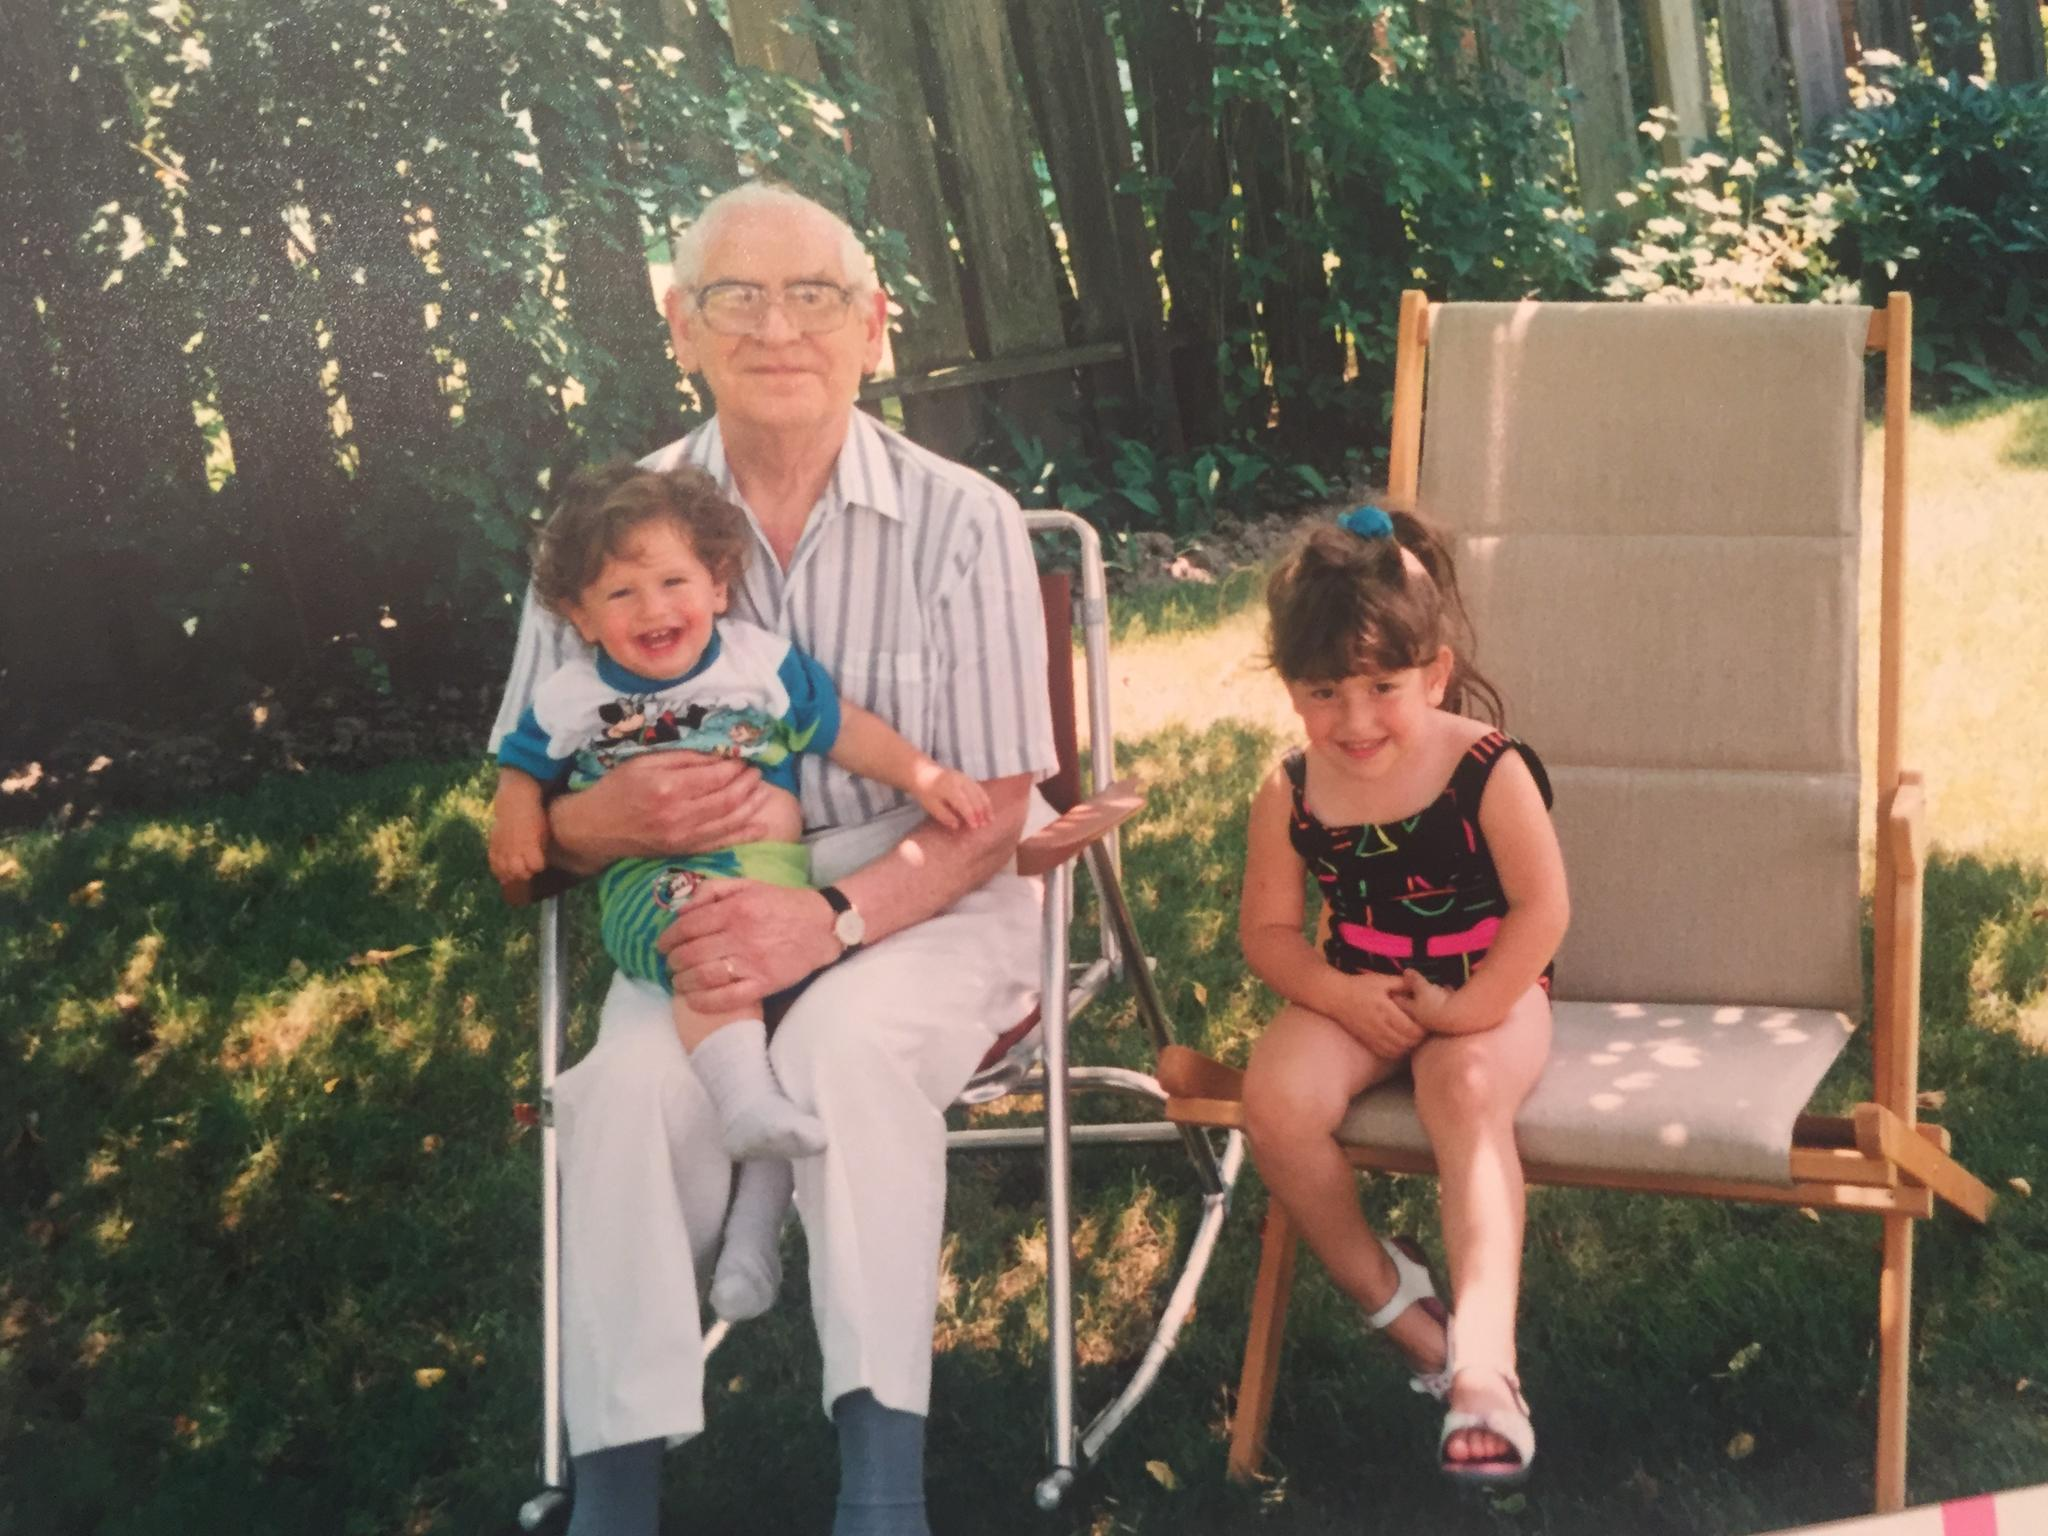 Danielle, Evan and their paternal grandfather